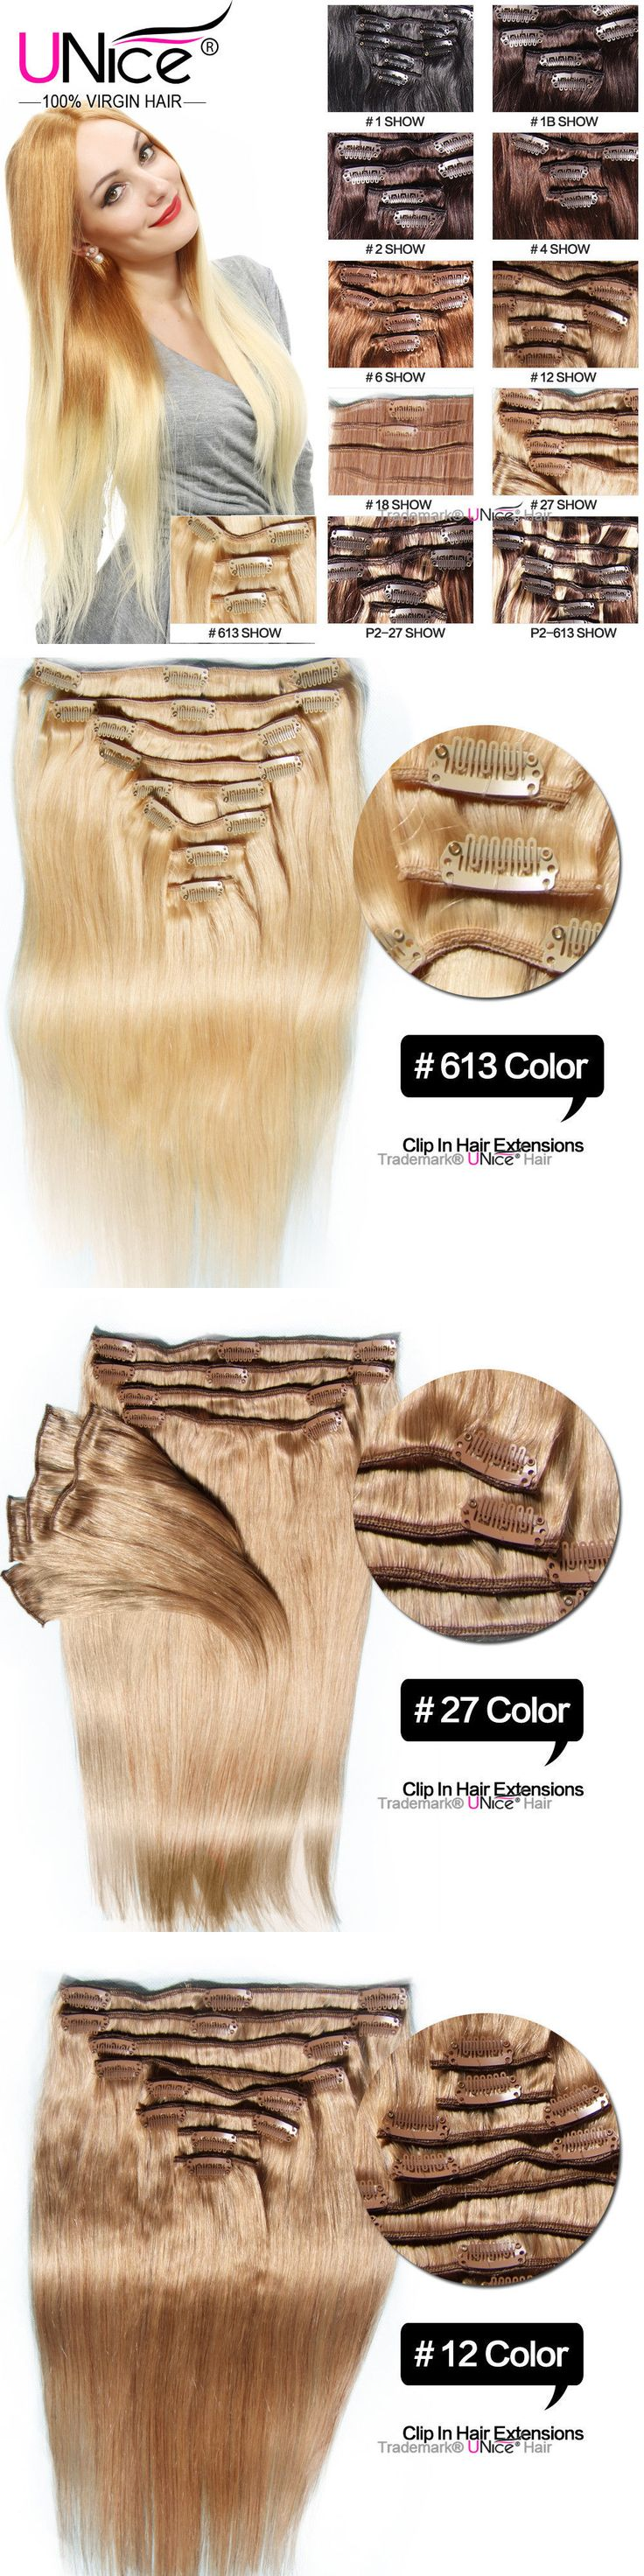 The 25 best ebay hair extensions ideas on pinterest extensions hair extensions 8 pcs set brazilian virgin hair straight full head clip in human hair pmusecretfo Images